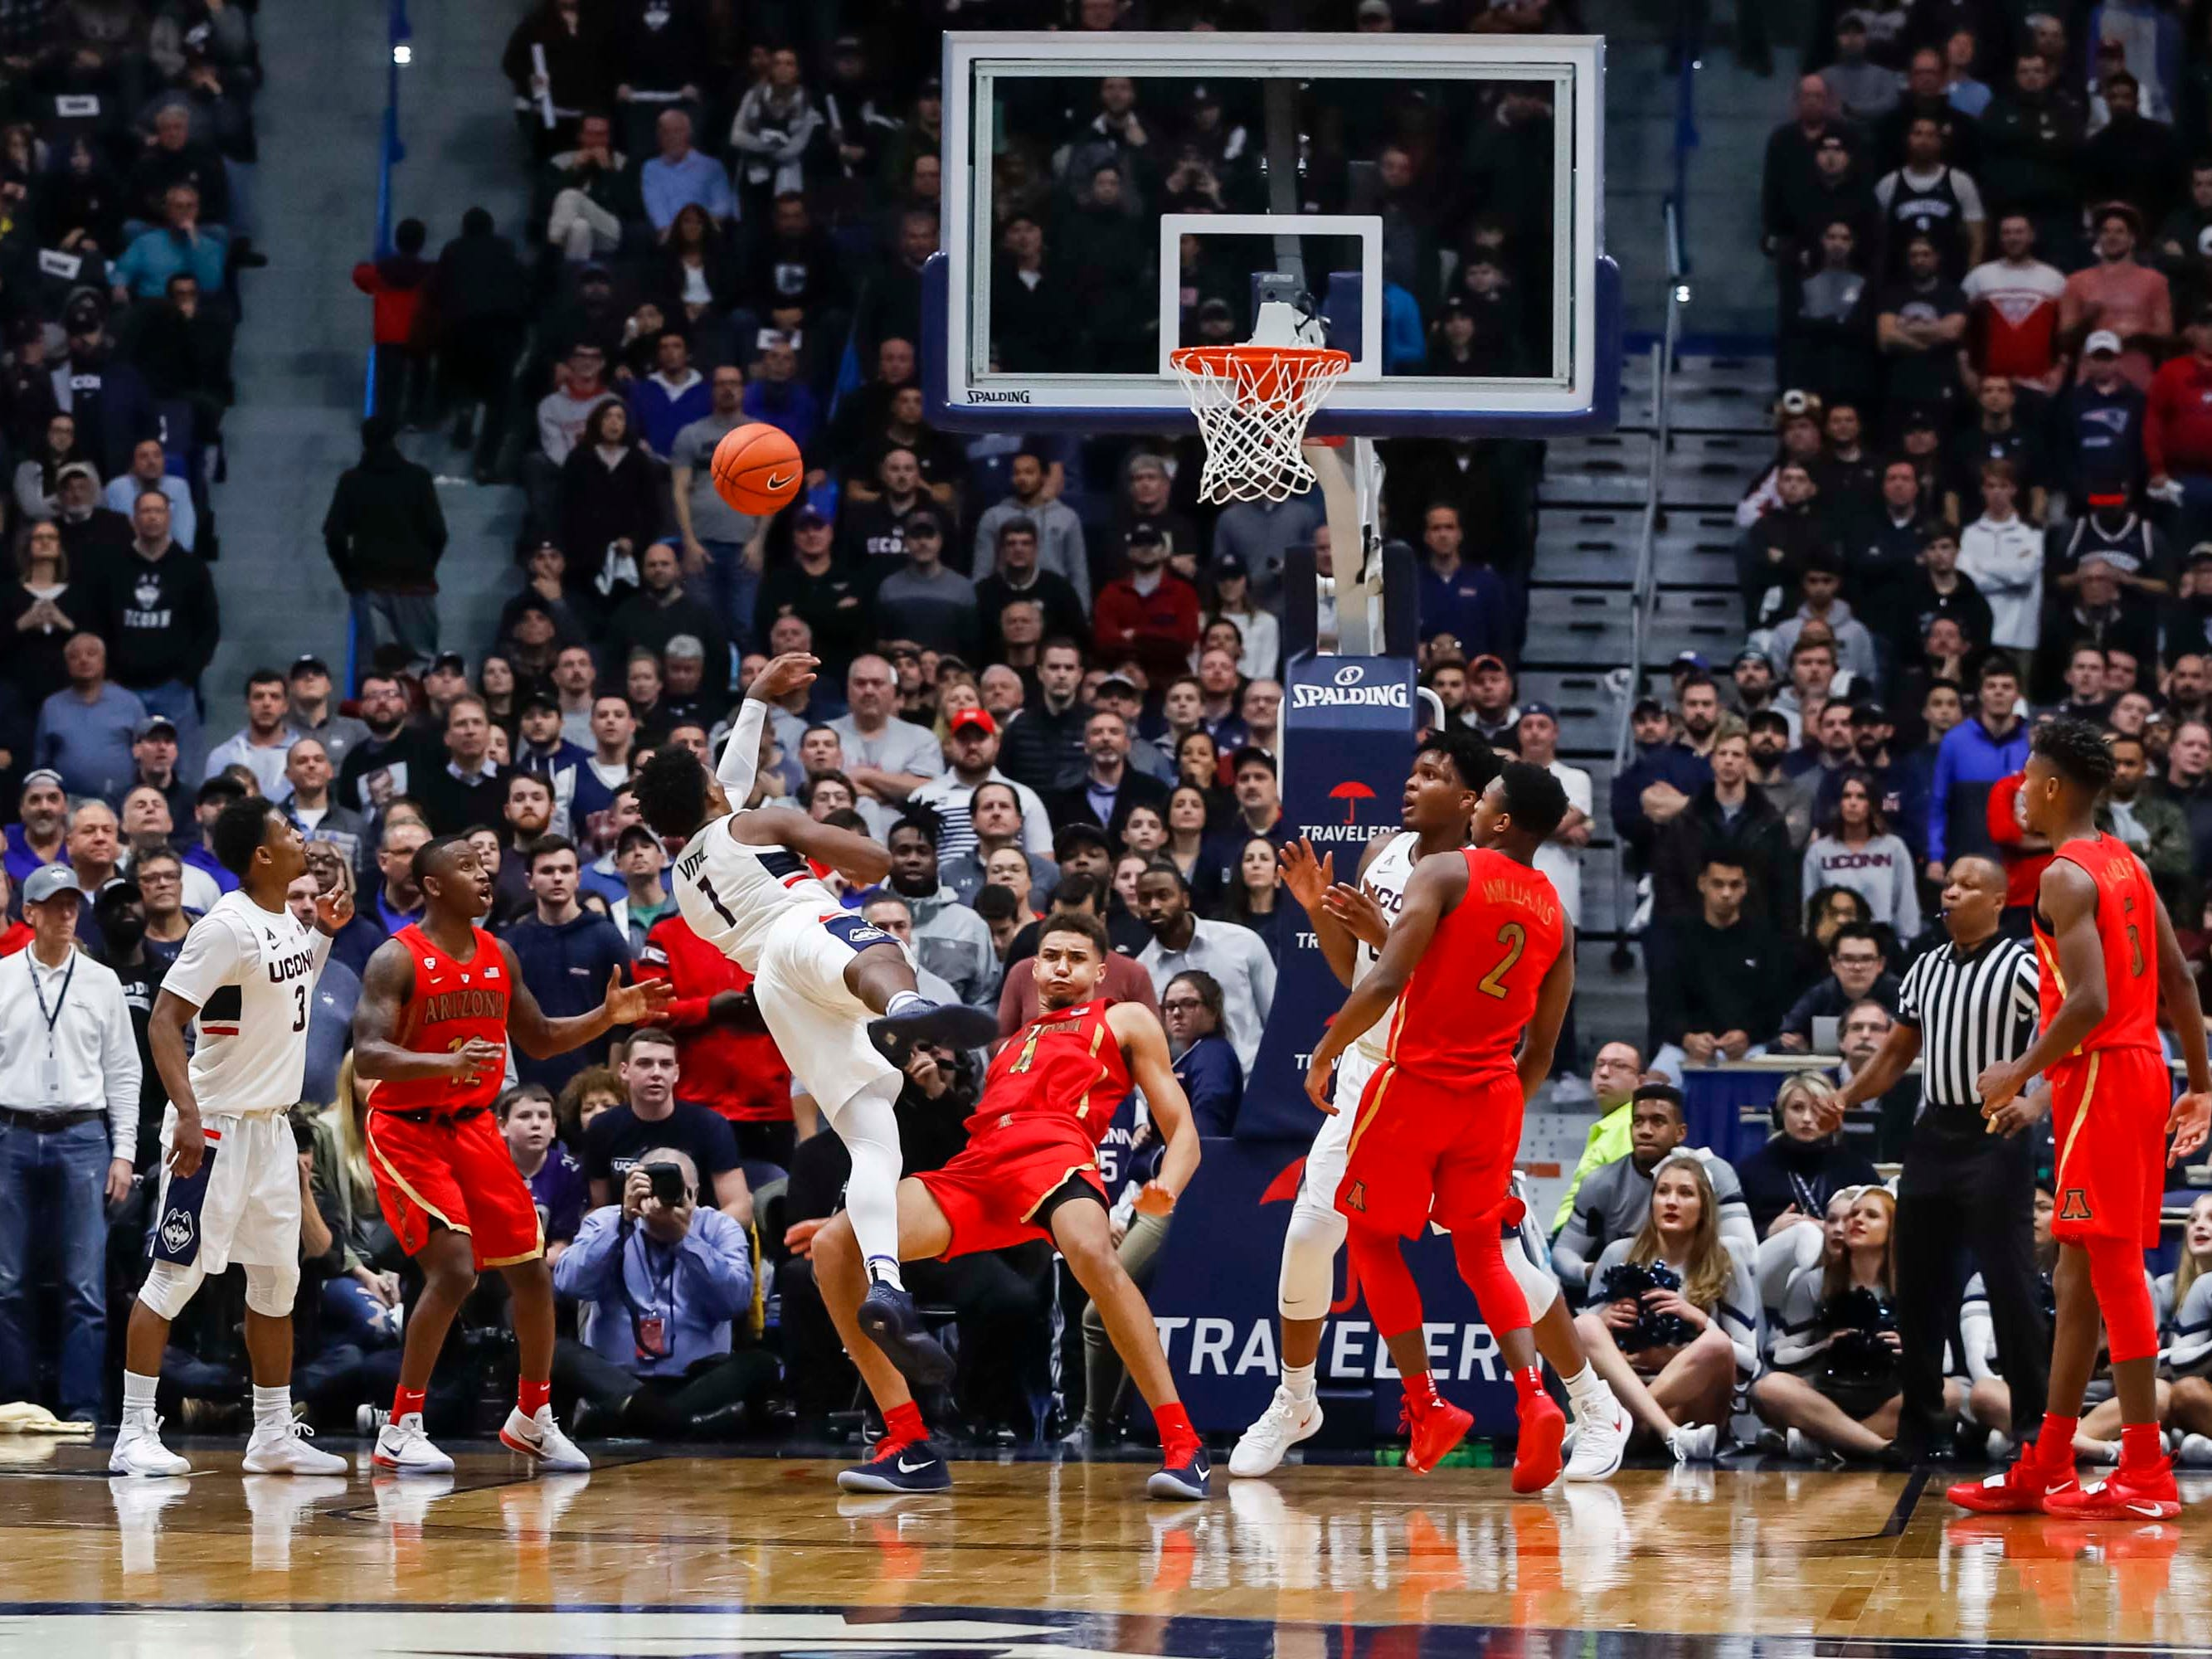 Dec 2, 2018; Storrs, CT, USA; Arizona Wildcats forward Ira Lee (11) fouls Connecticut Huskies guard Christian Vital (1) in the second half at XL Center. Arizona defeated UConn 76-72. Mandatory Credit: David Butler II-USA TODAY Sports